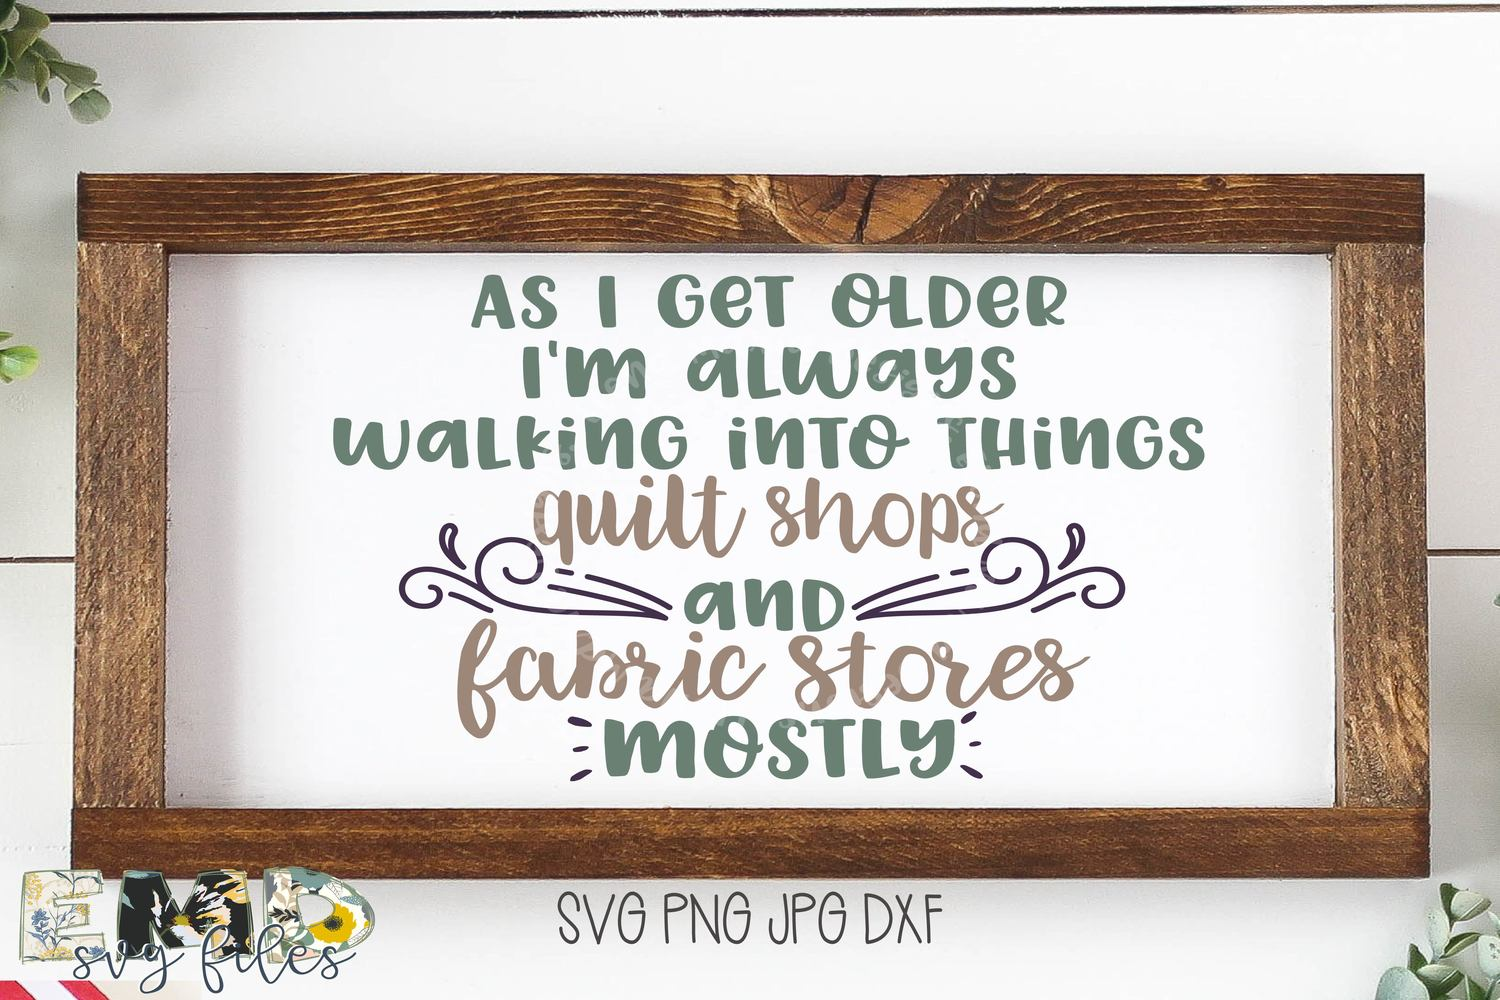 Sewing SVG Bundle, Creative SVG Files, Fabric Svg, Quilting example image 3